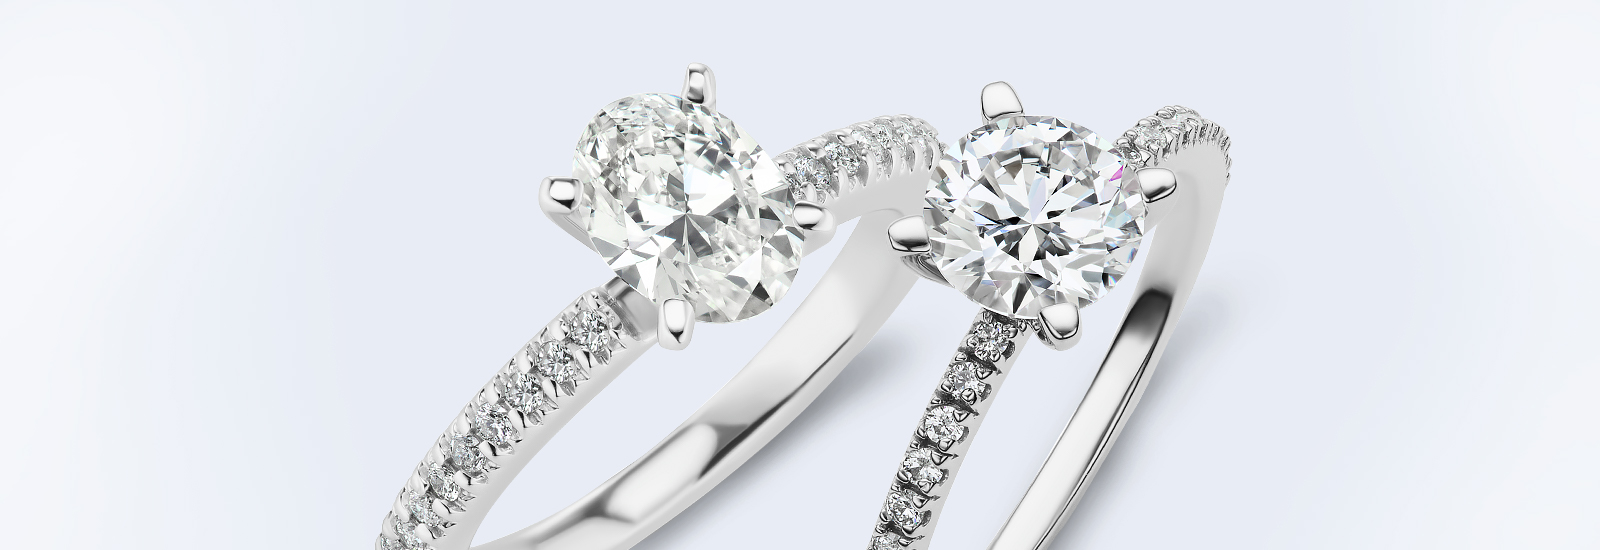 various high quality sparkling diamond engagement rings on a surface for buying